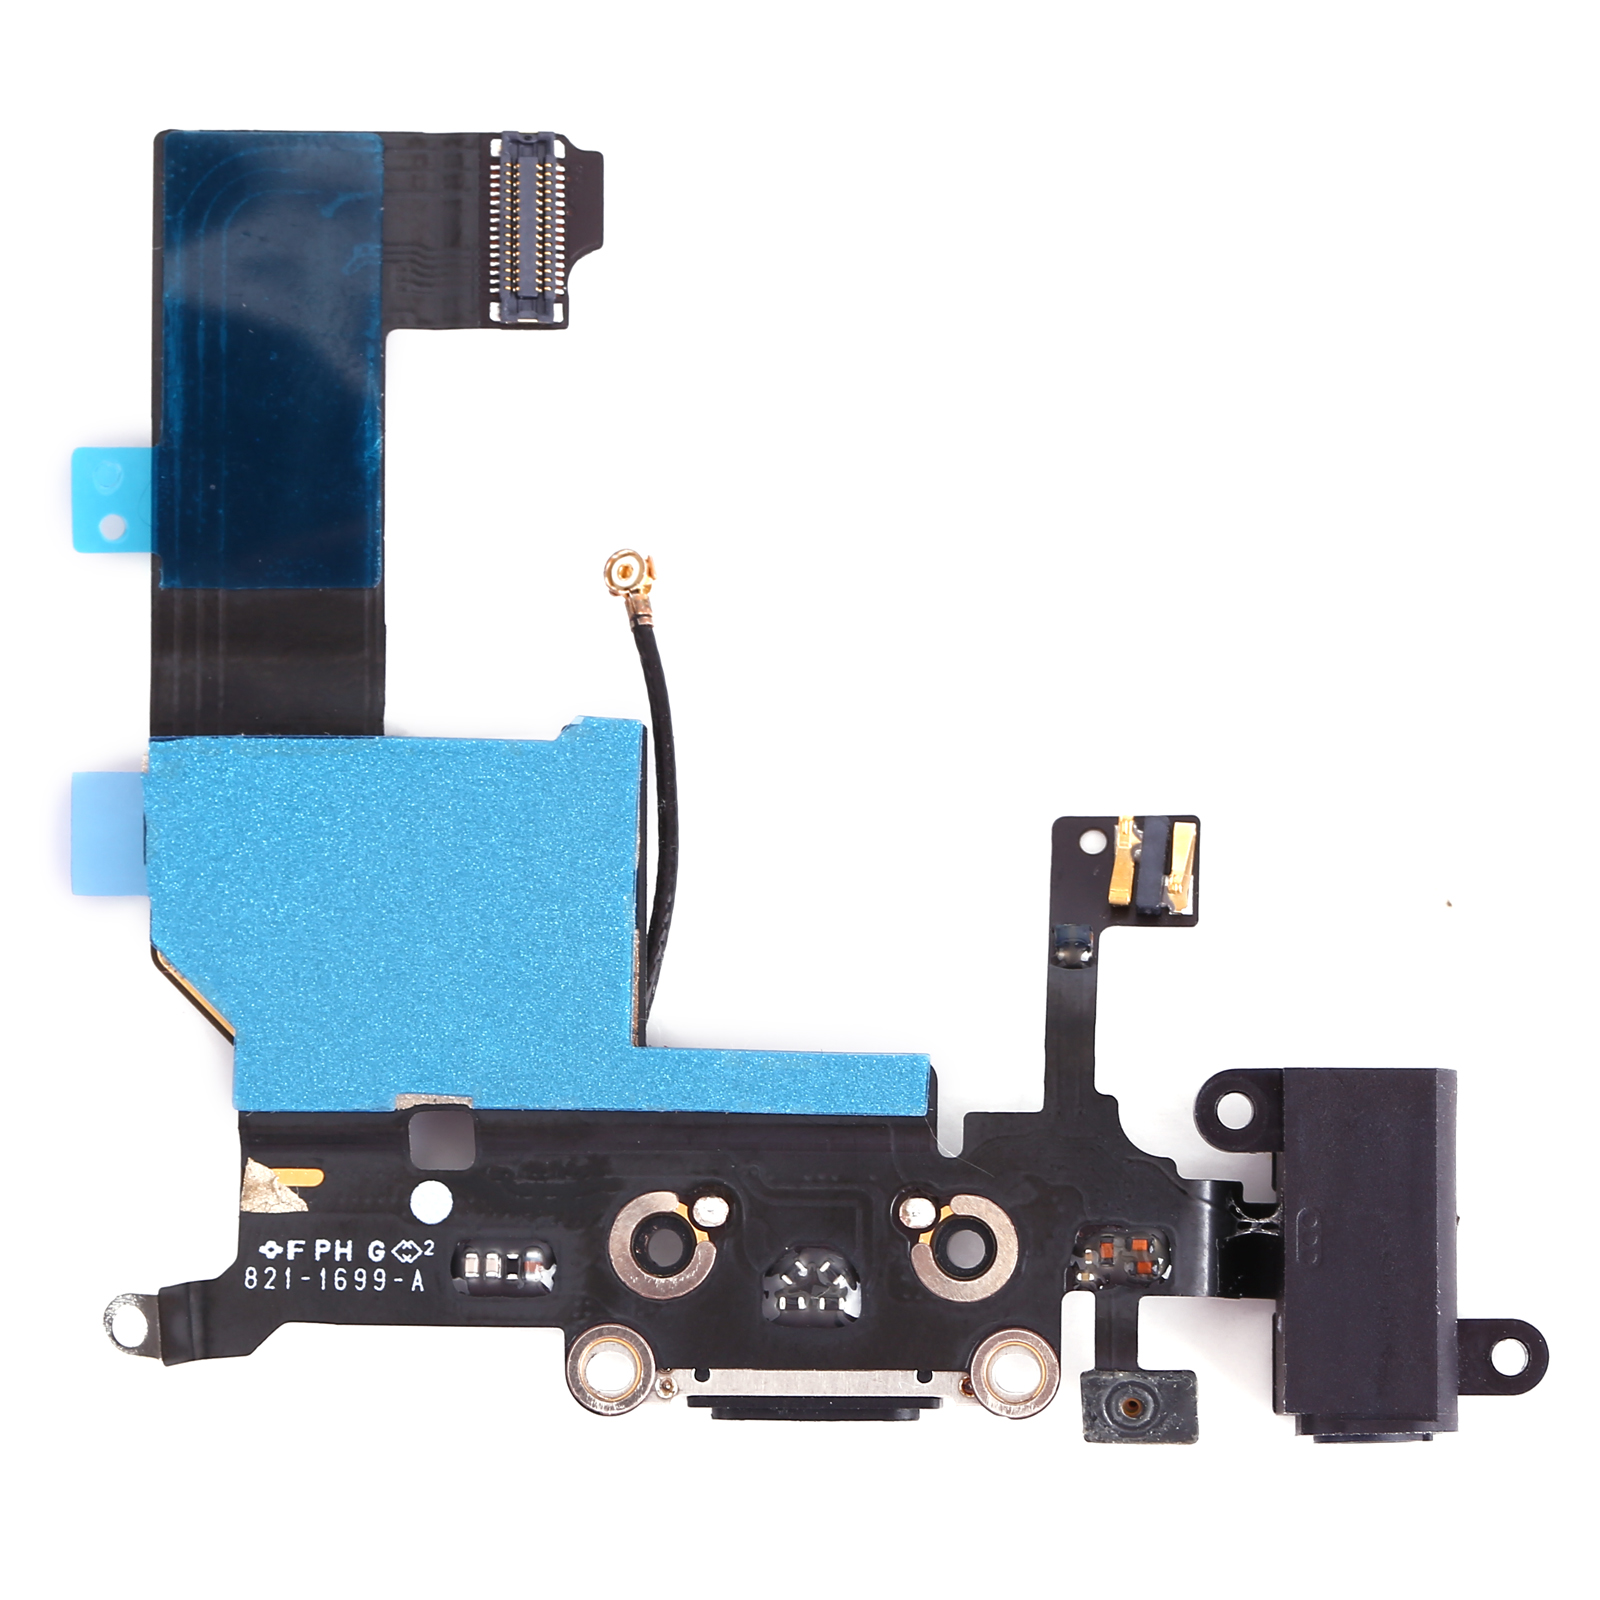 Replace Iphone 5 Charging Port 28 Images Buy Iphone 5 Charging Port Replacement Dock Usb